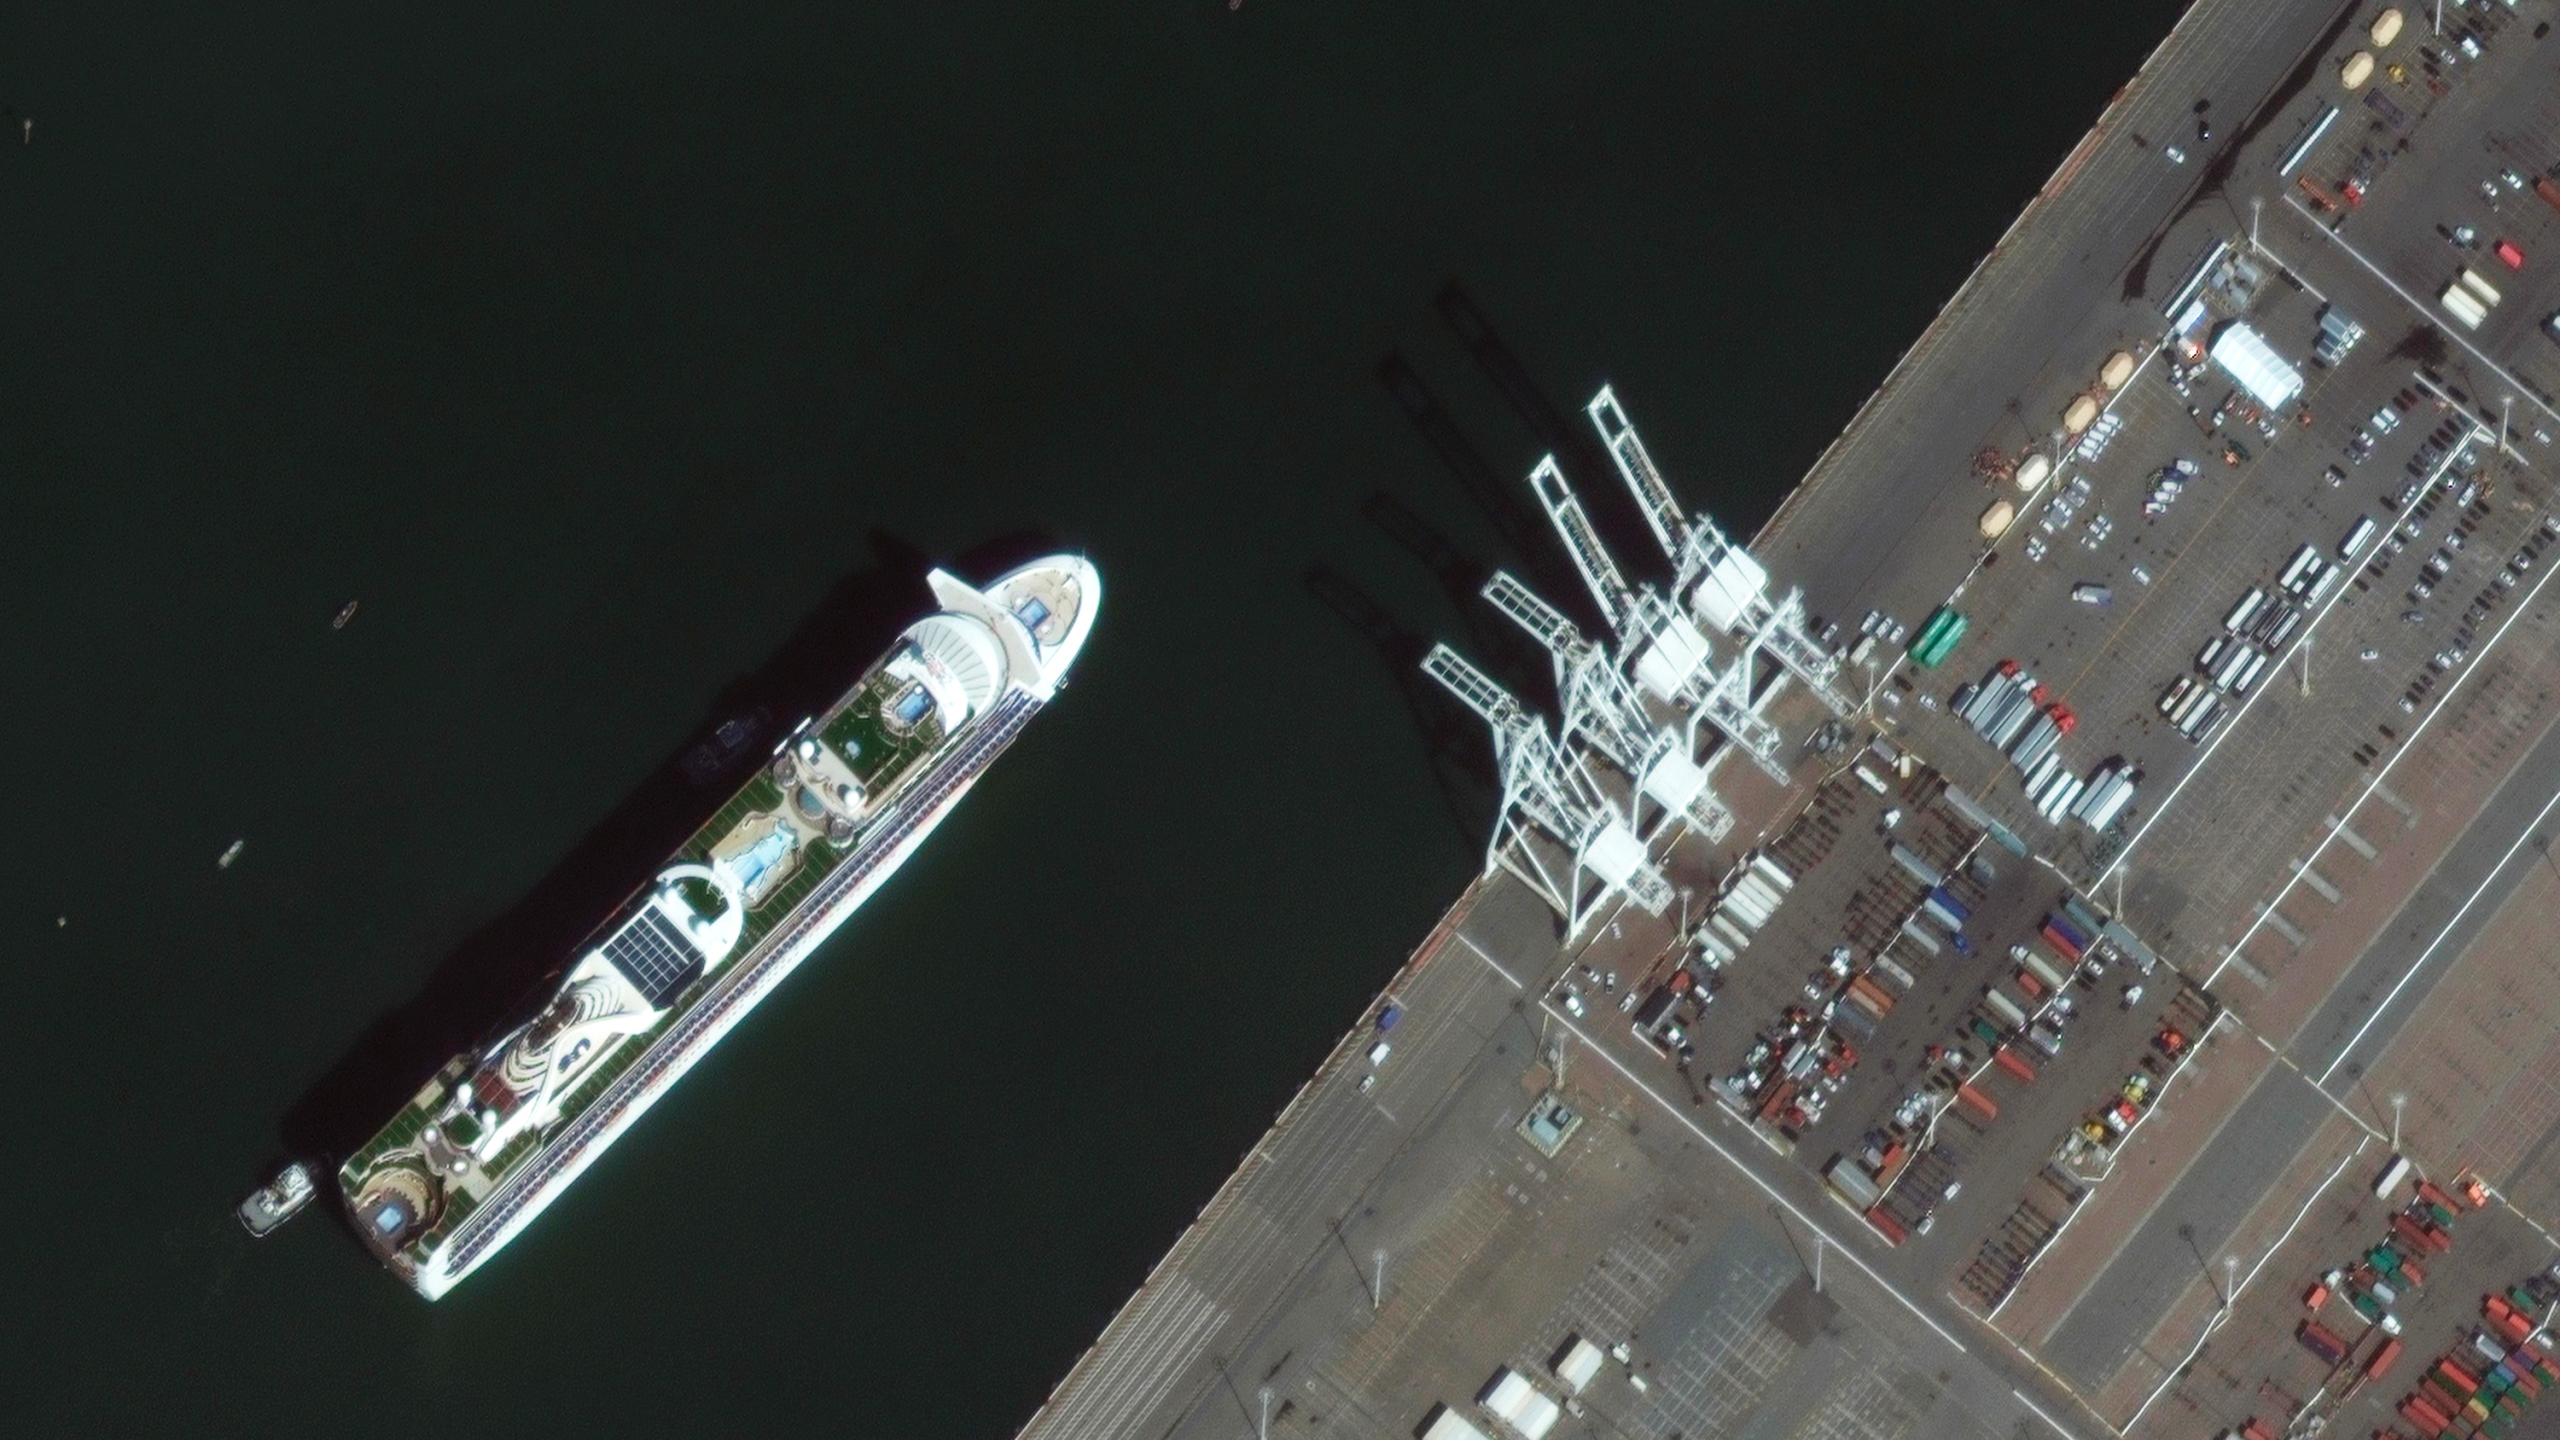 3 passenger cruise ships to dock at Port of Oakland | KRON4